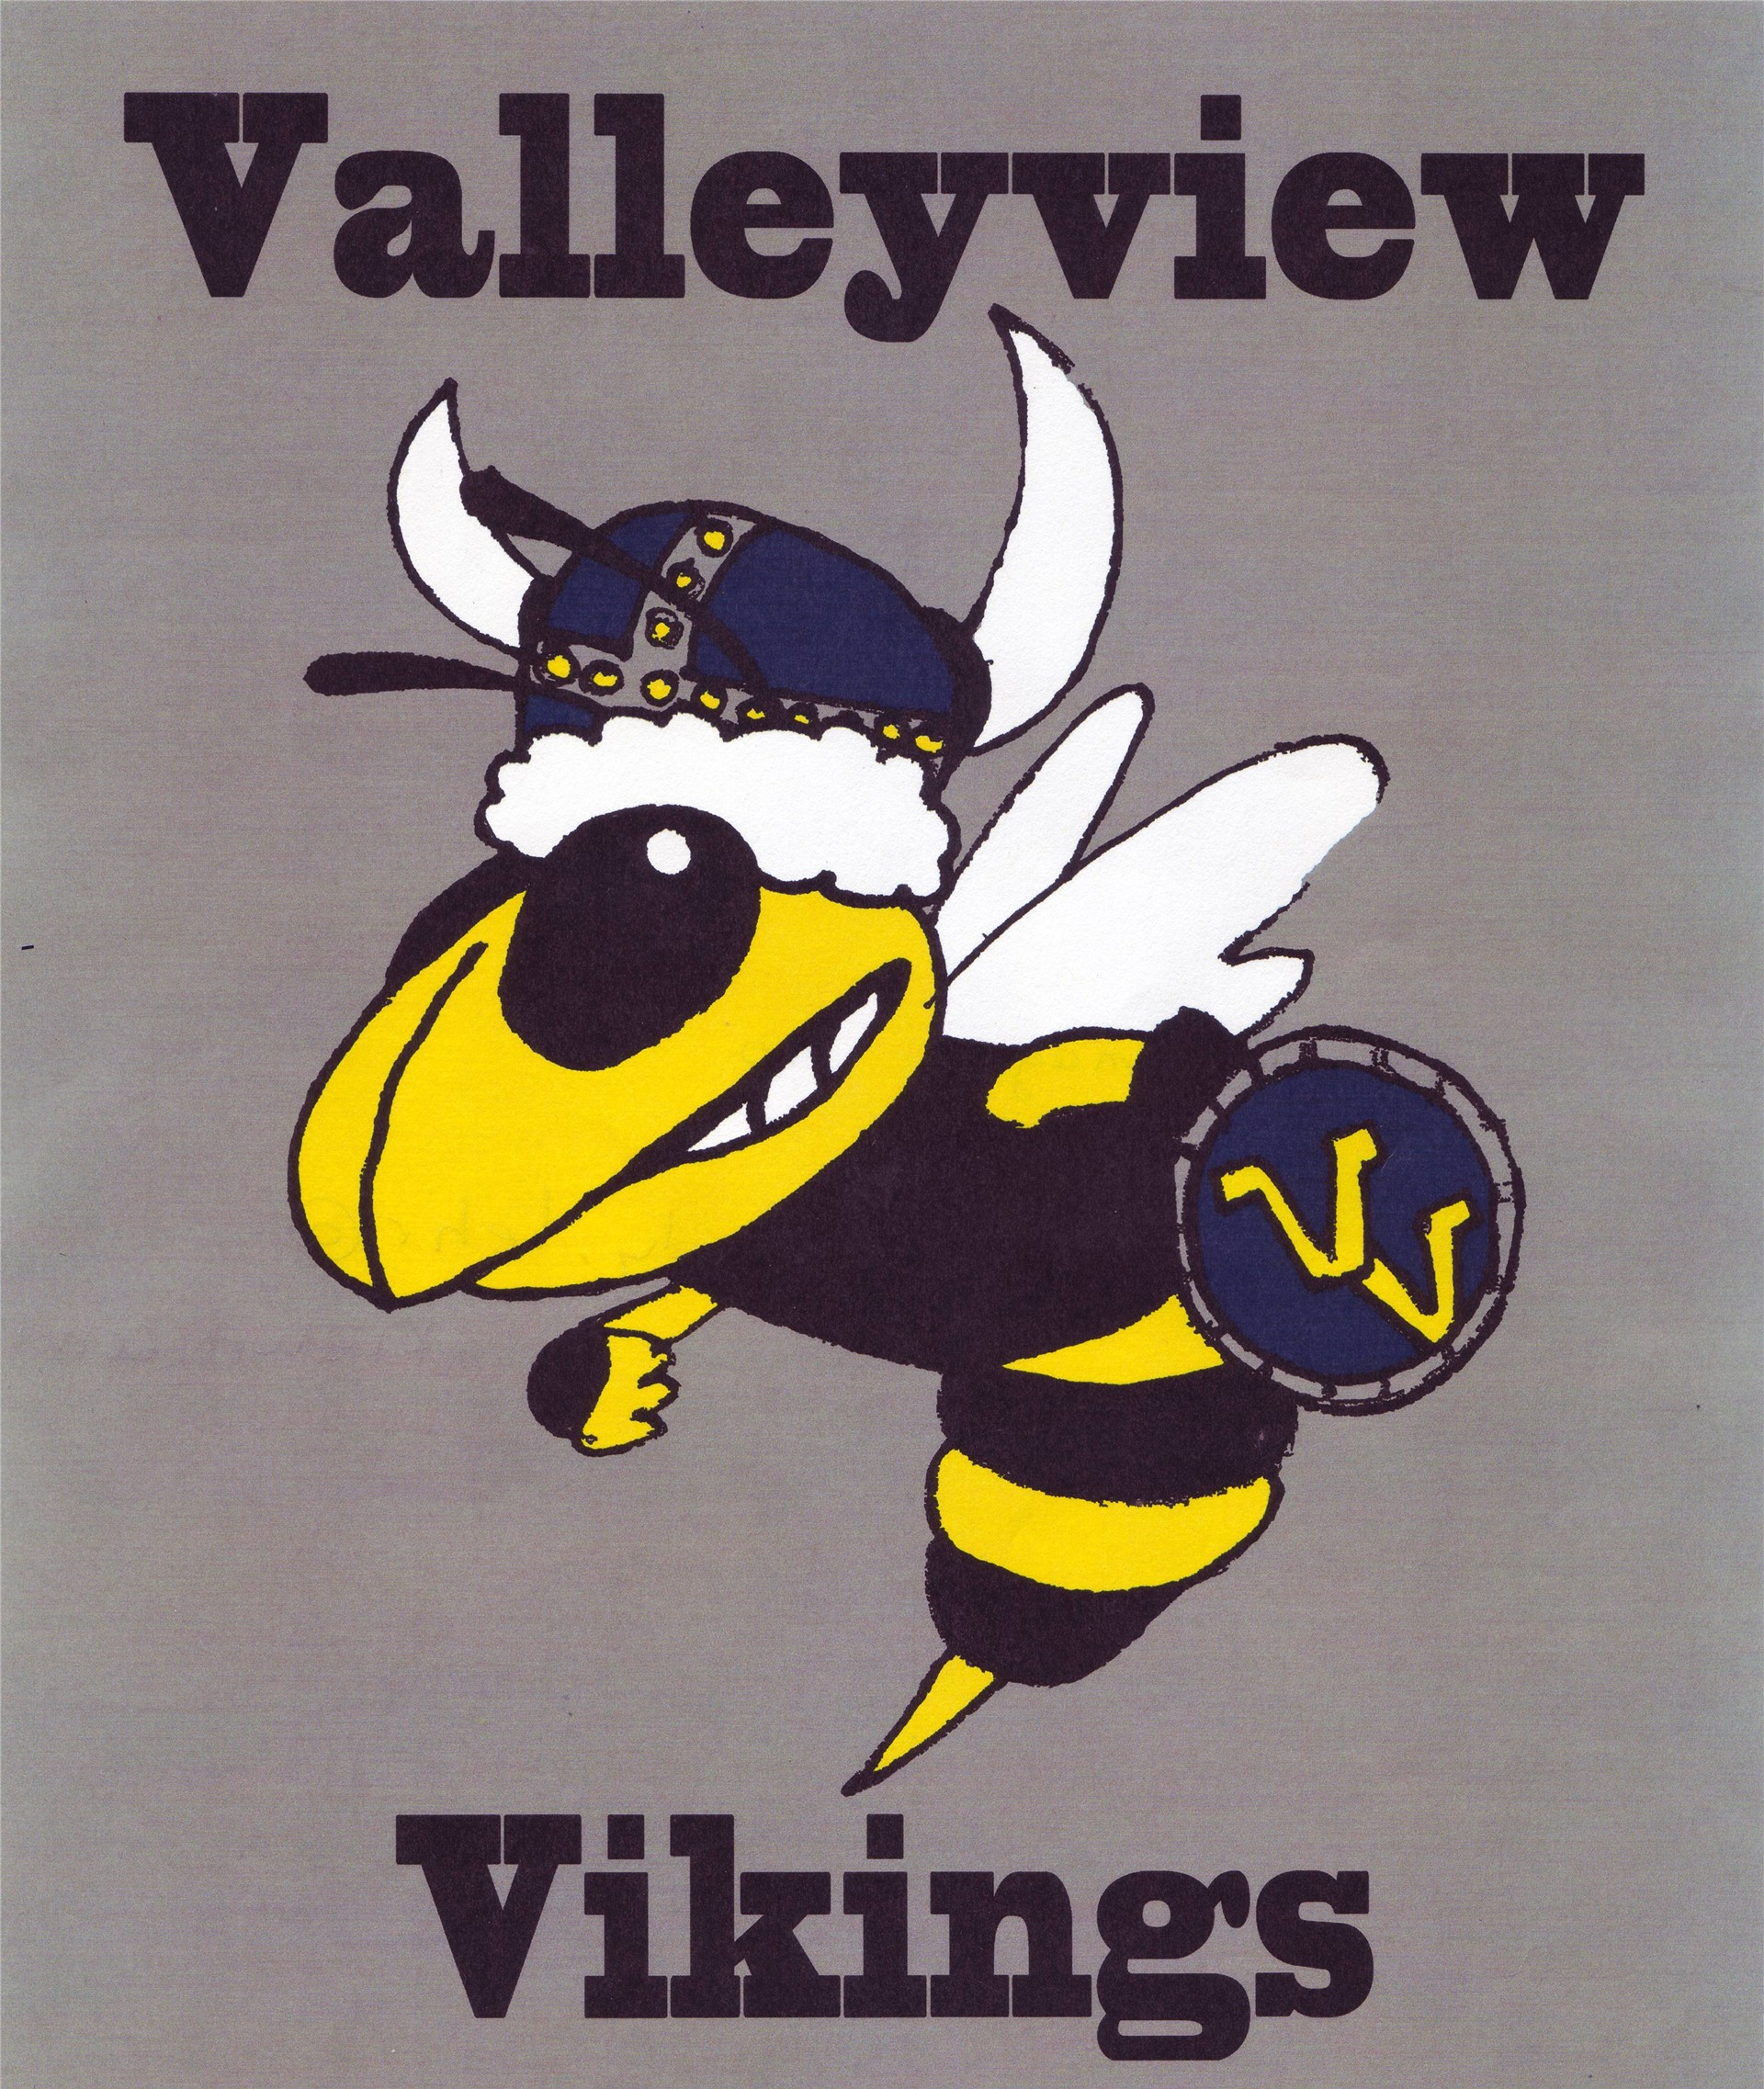 Valleyview Vikings Mascot